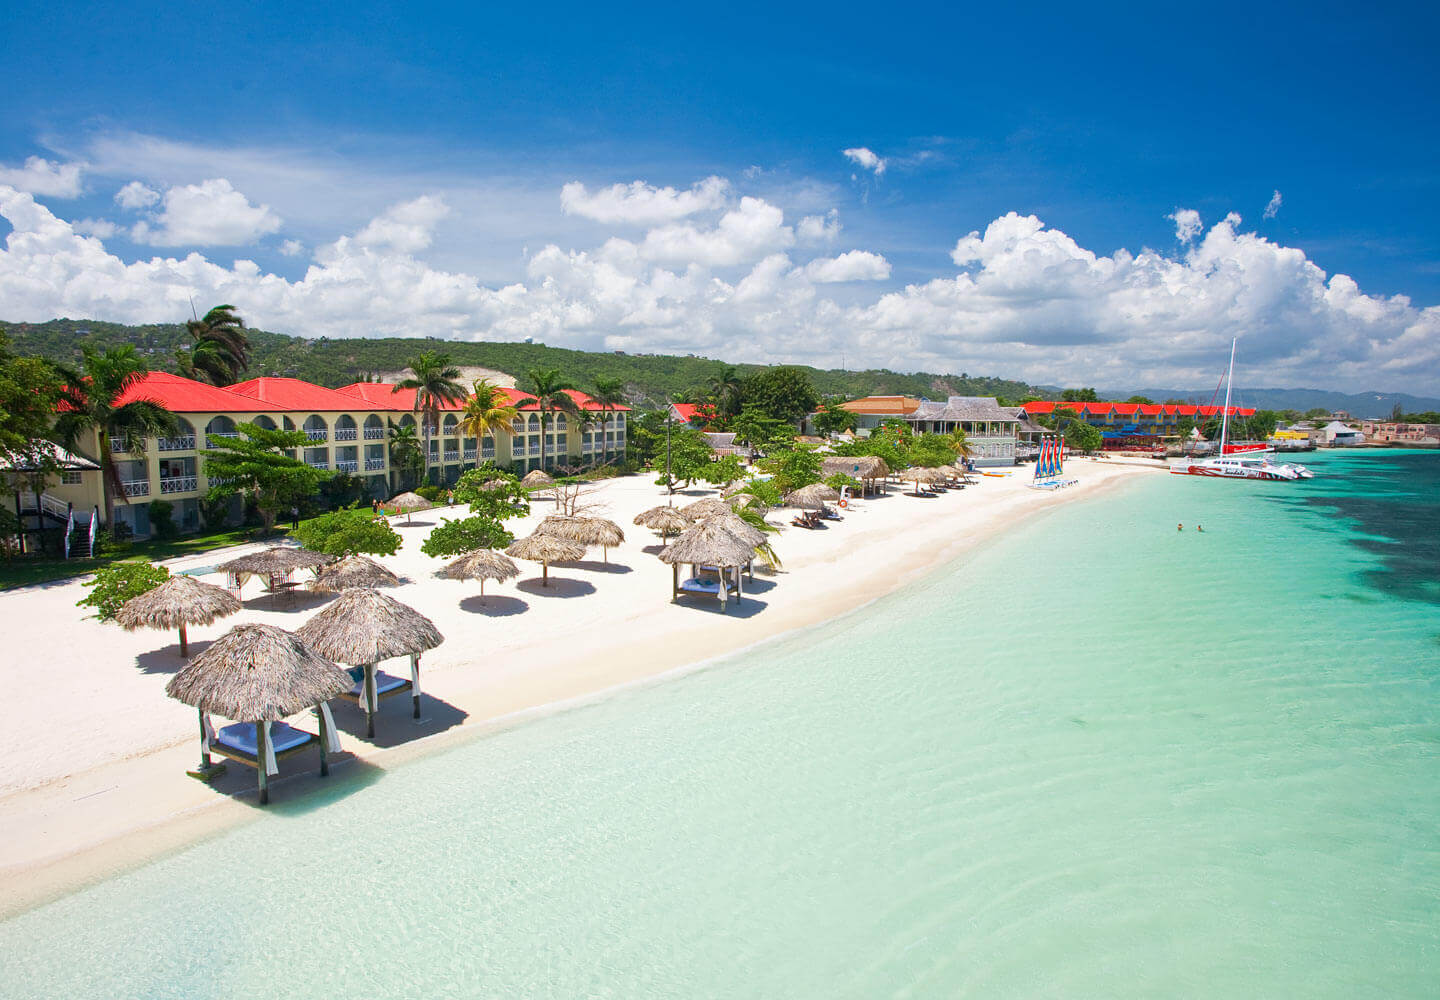 Sandals Montego Bay - Honeymoons